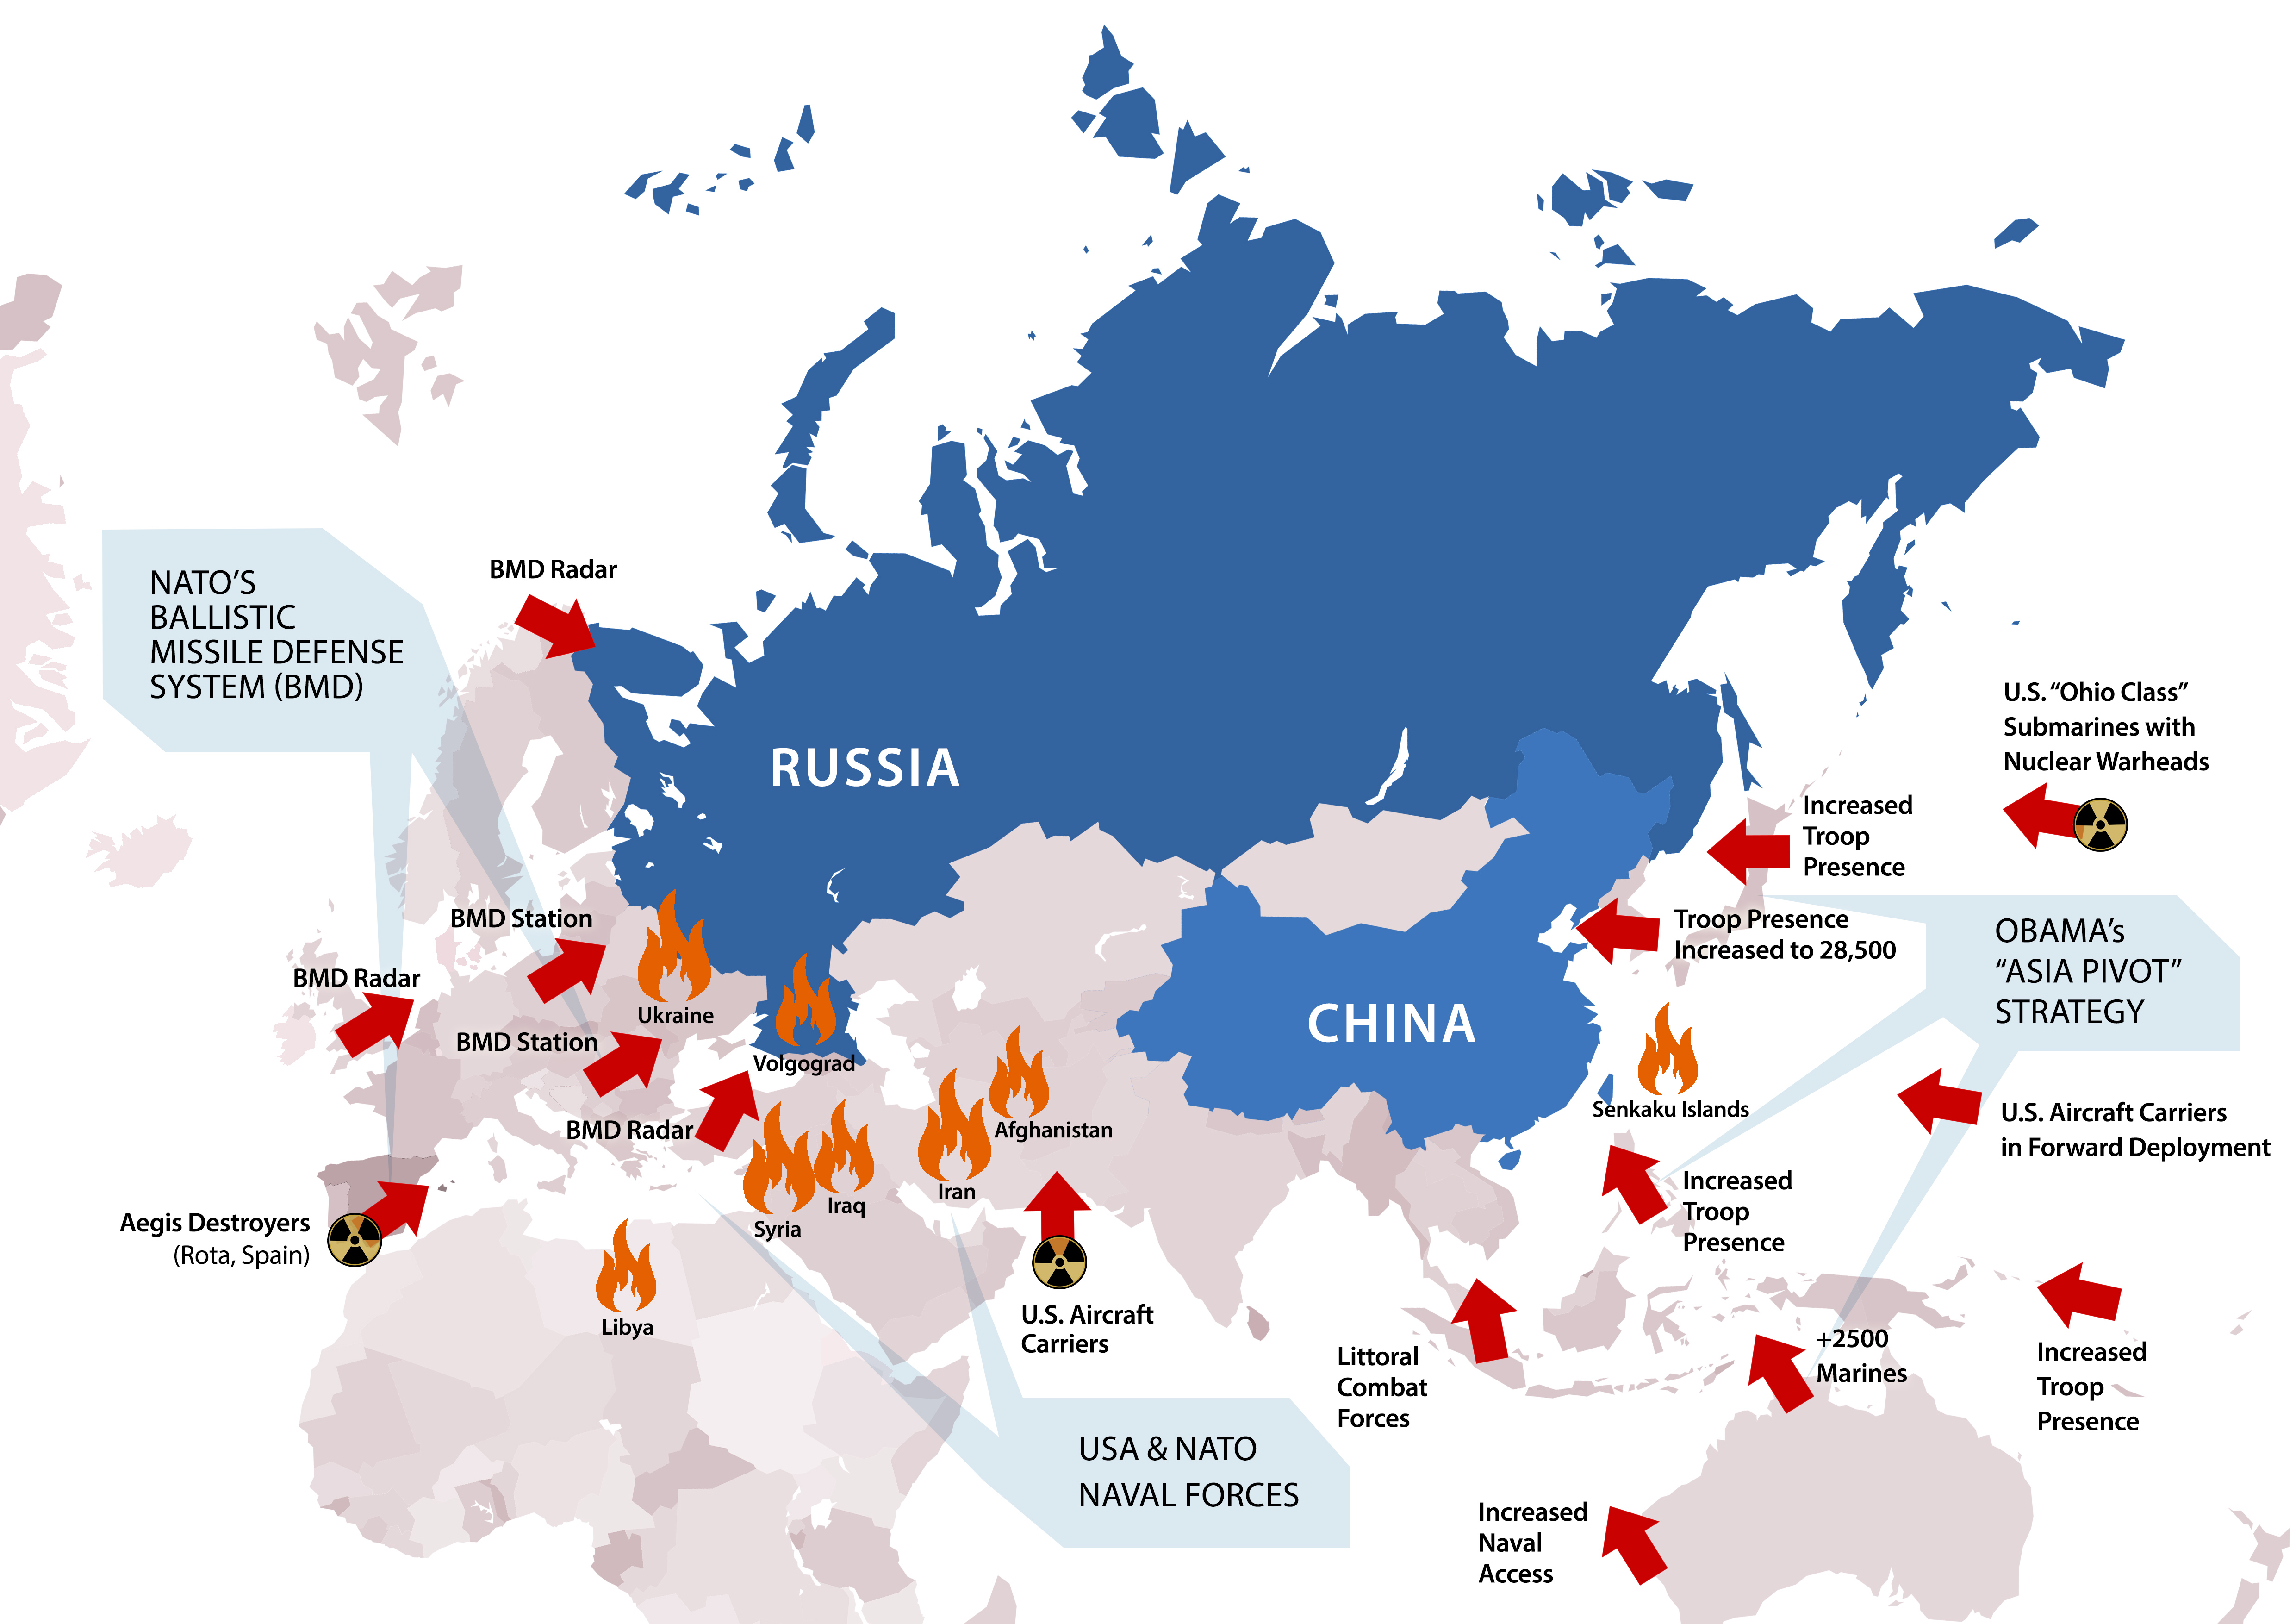 Russian America Russian Life World Map Of Incarceration Rates - Us vs europe map